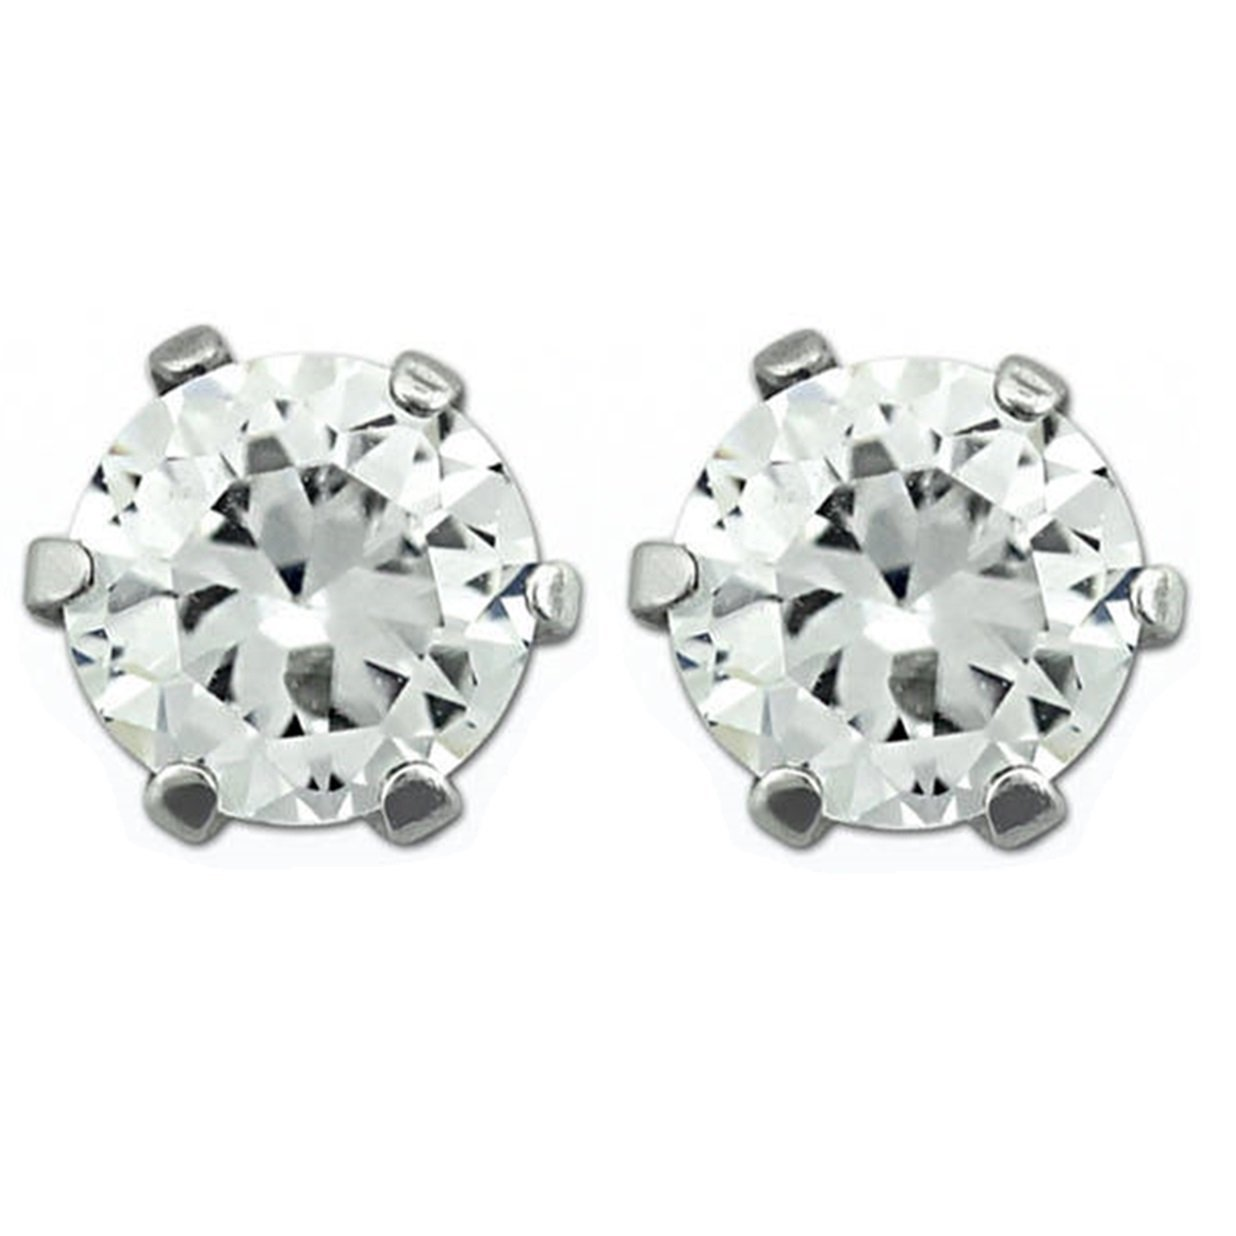 Round Cubic Zirconia Stone Stud Earrings – 6mm Stainless Steel, Magnetic